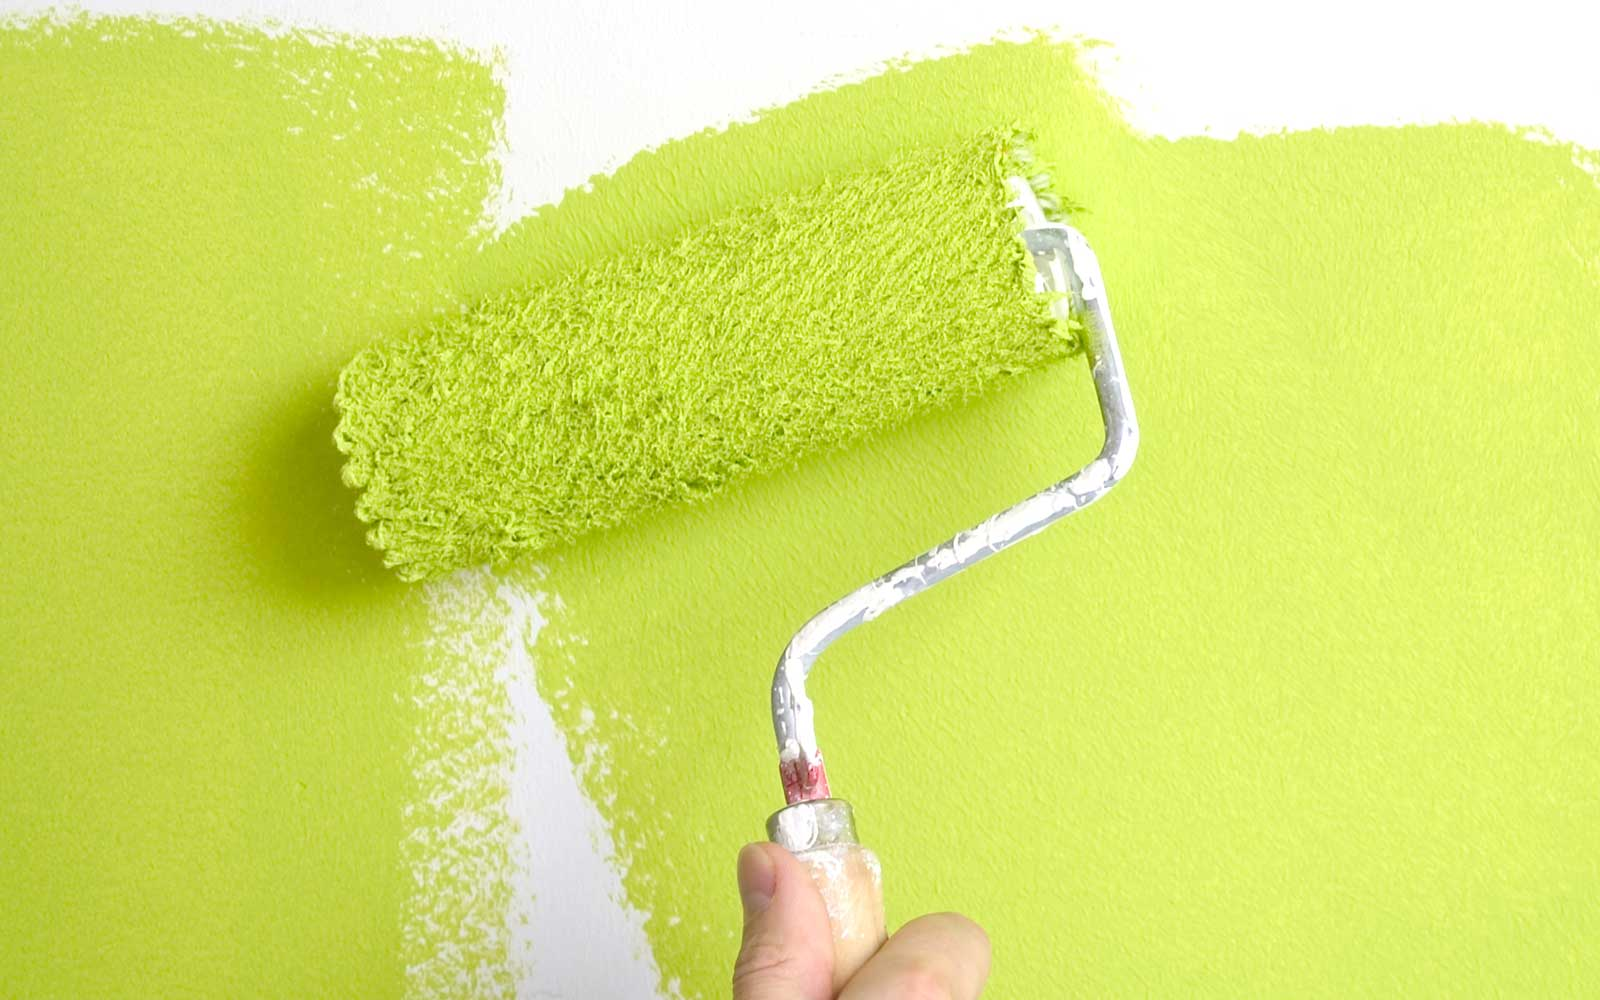 painting a wall with a roll